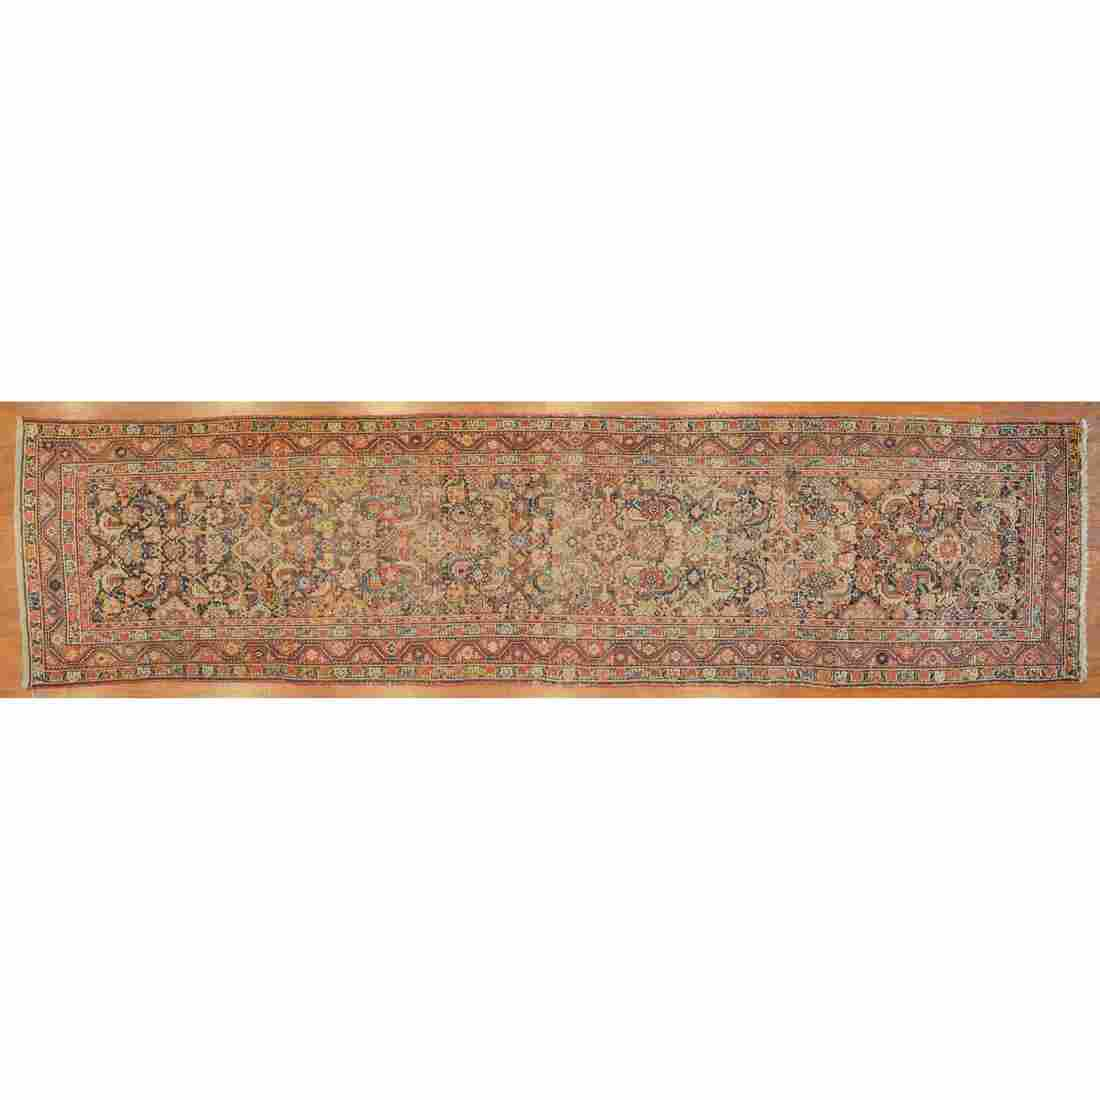 Antique Malayer Runner, Persia, 3 x 13.4